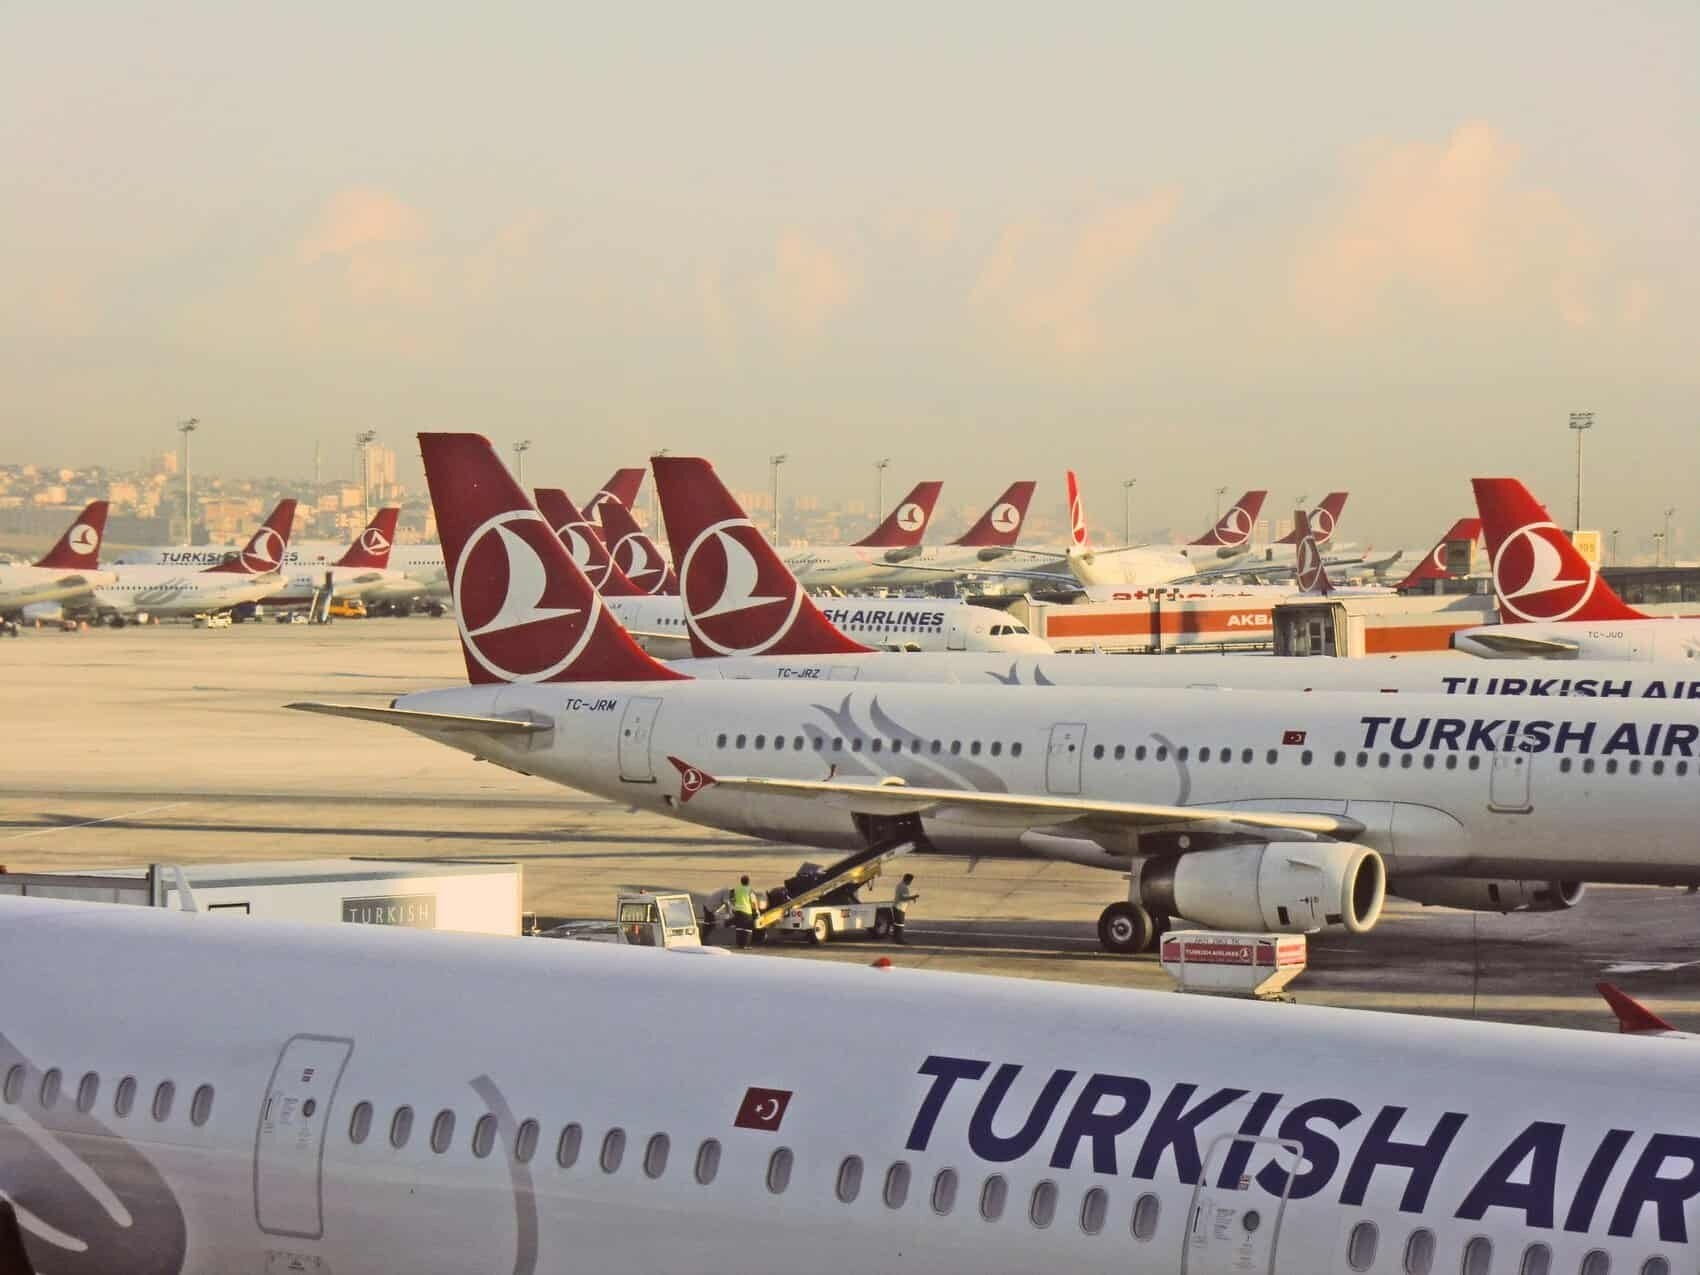 Istanbul Airport - Turkish Airlines